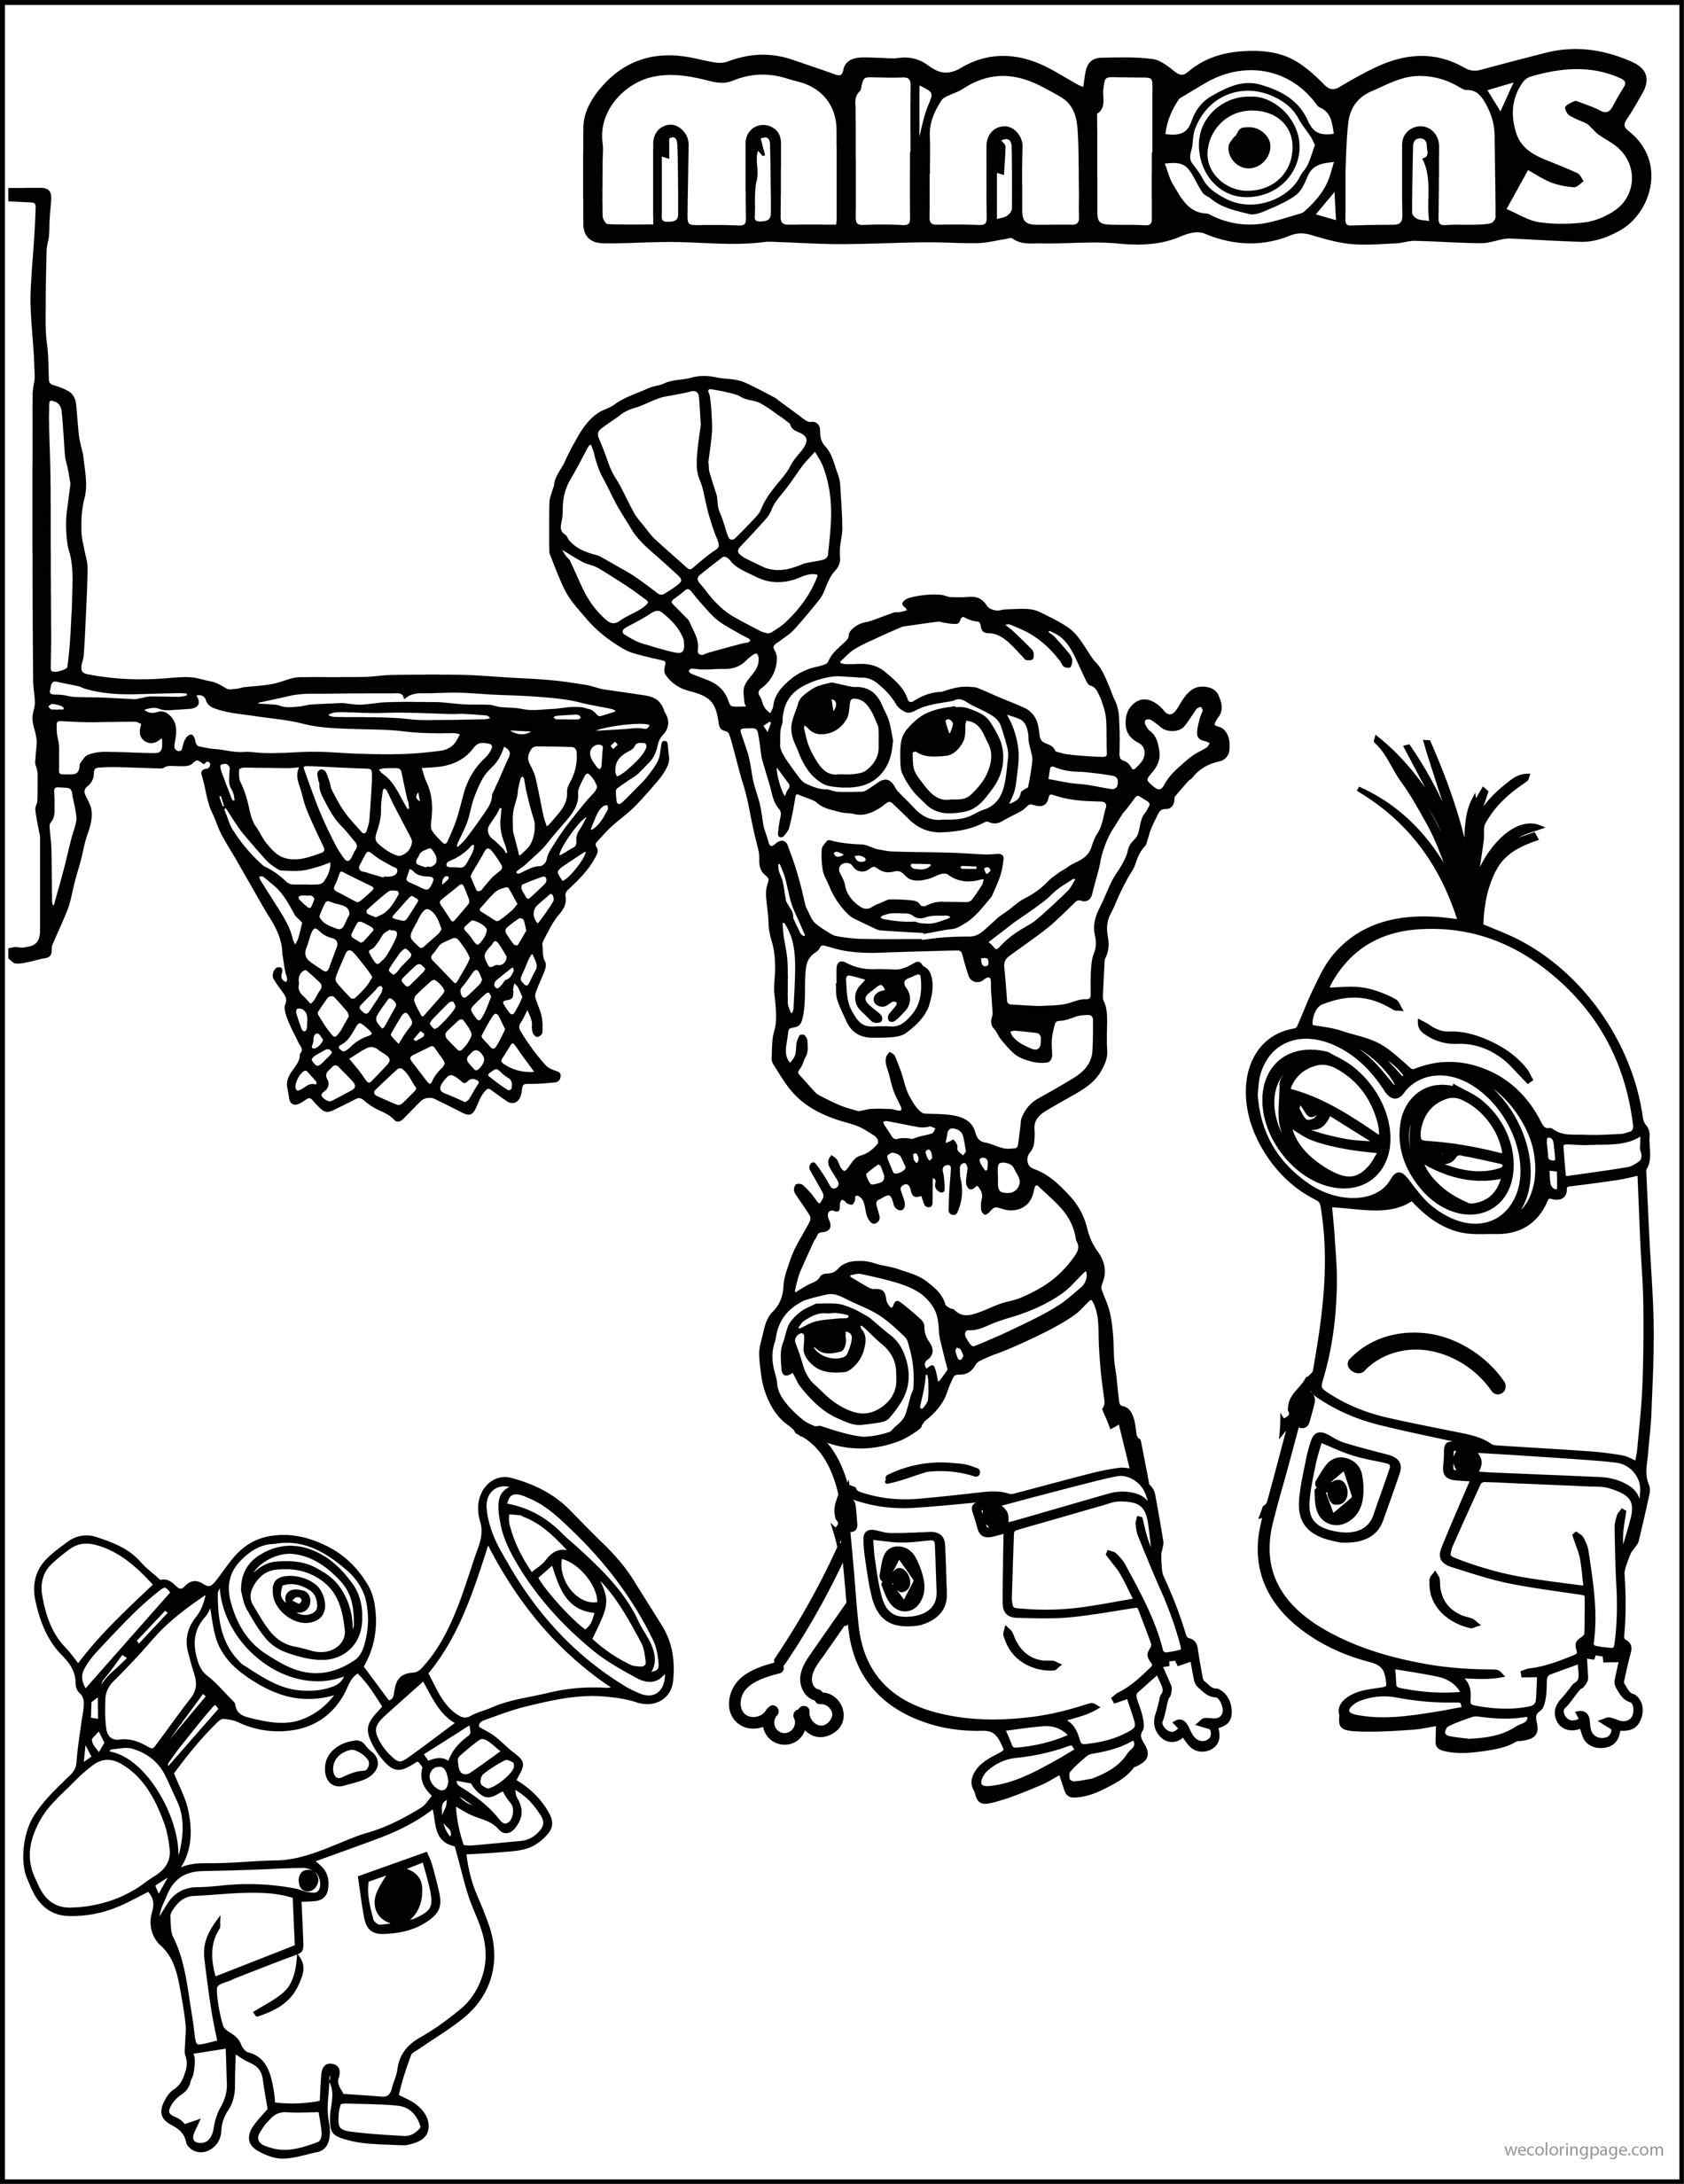 The Best Free Allen Coloring Page Images Download From 8